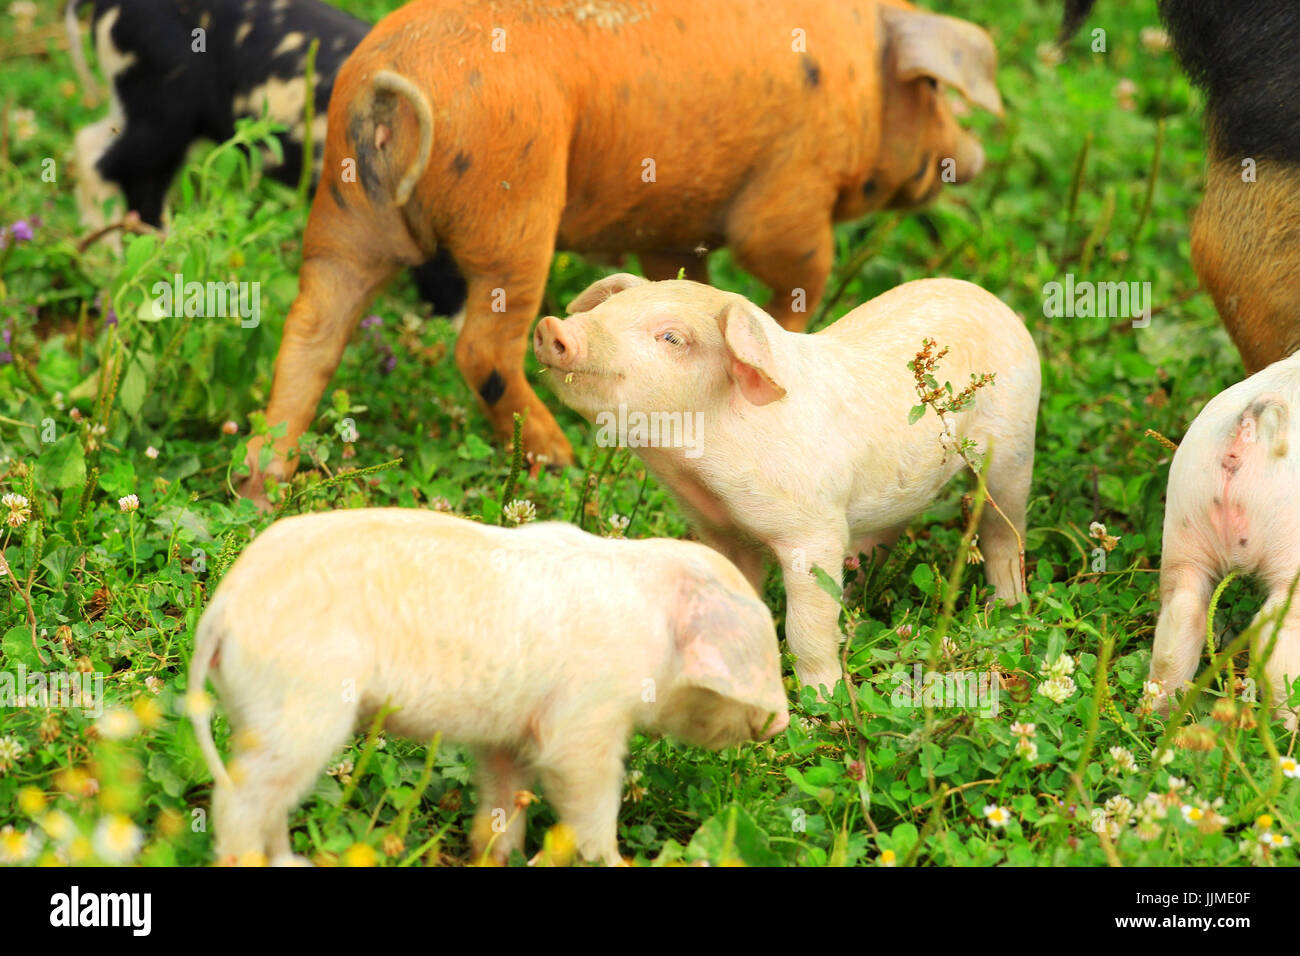 Cute piglets - Stock Image